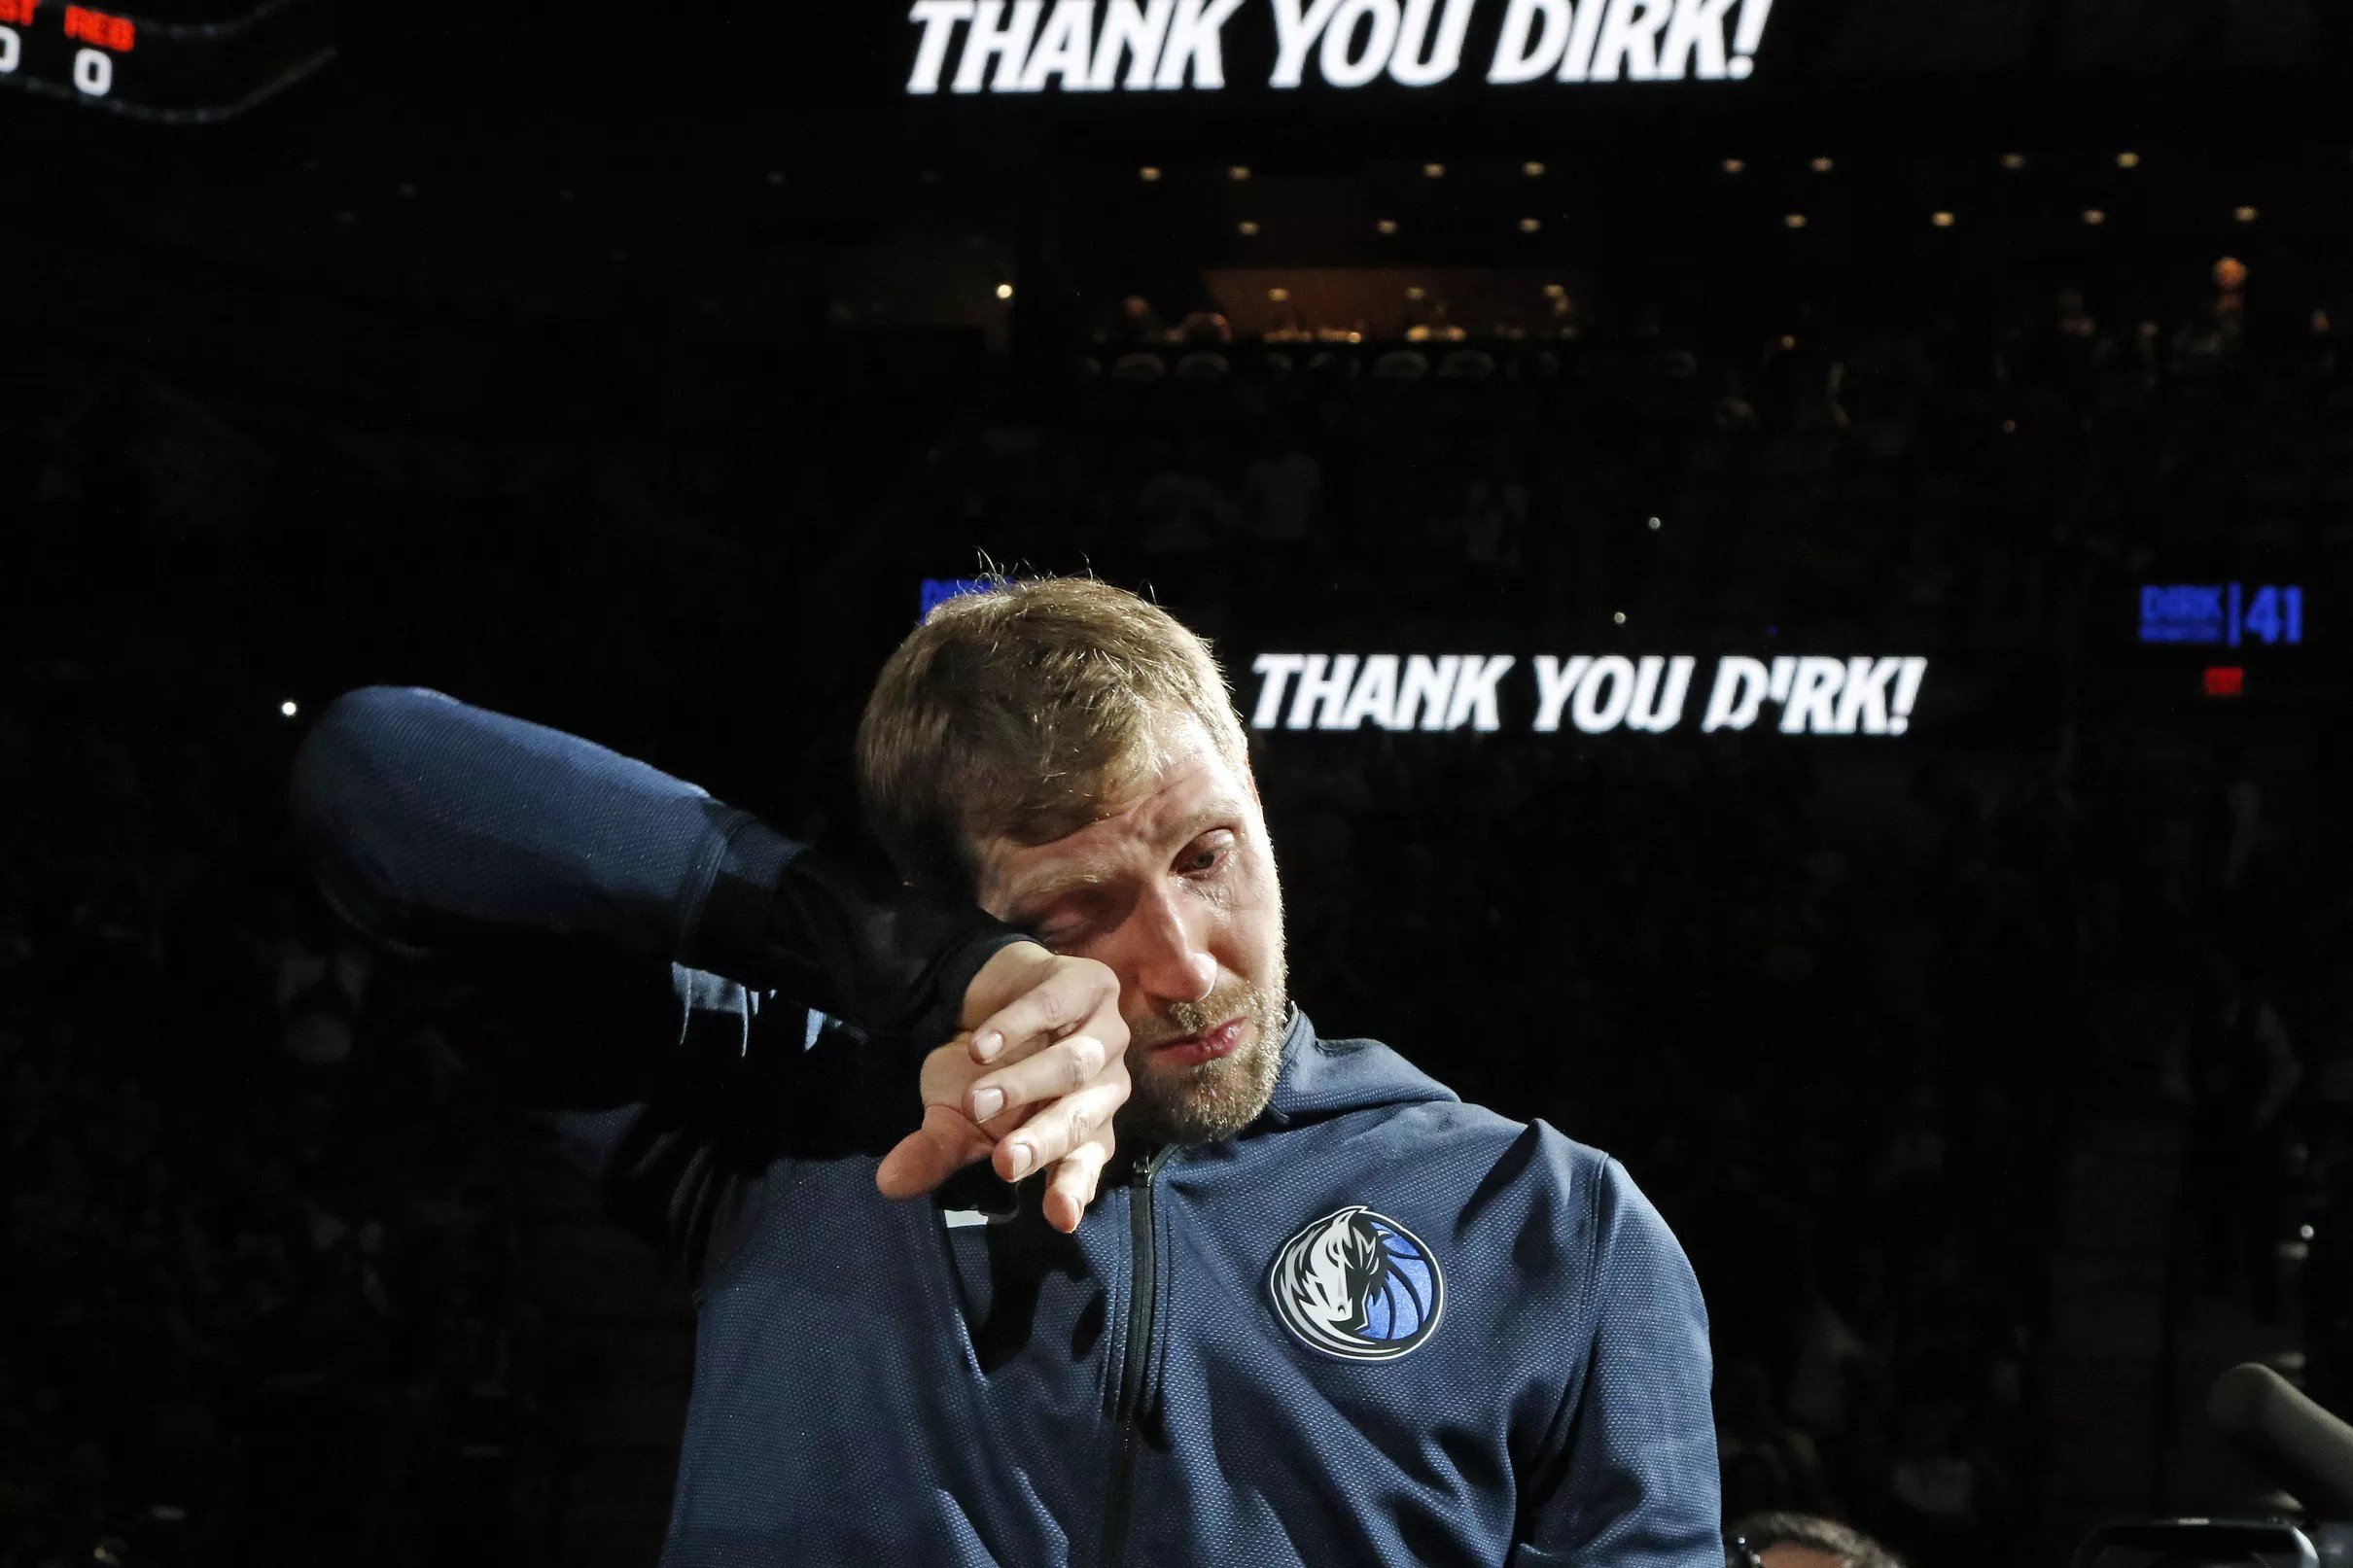 Finding meaning after Dirk